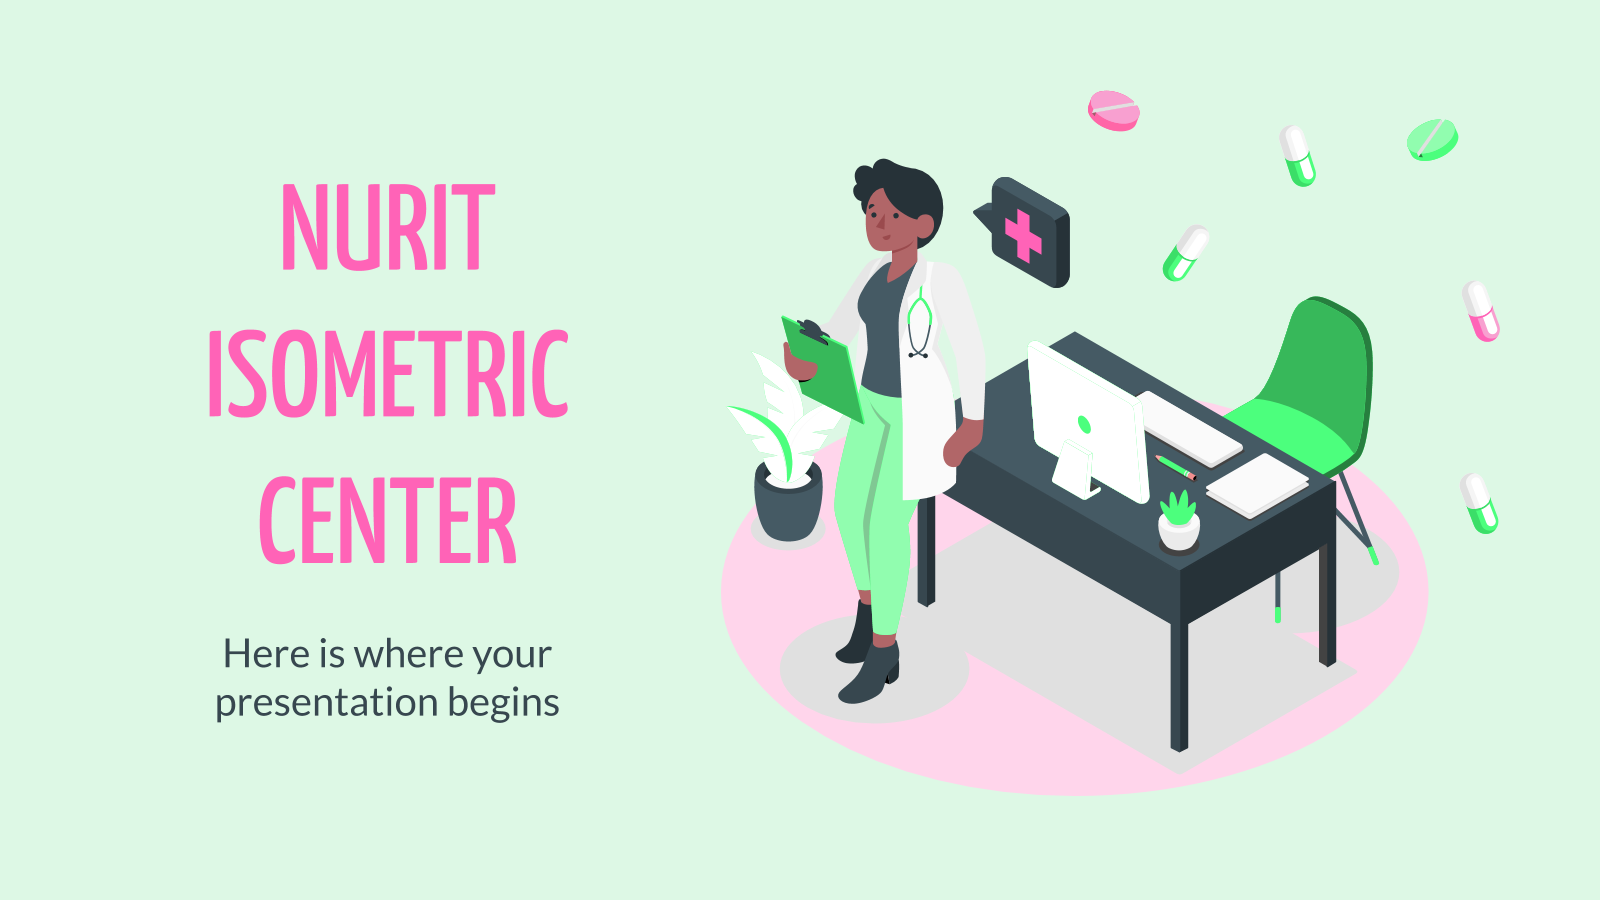 Nurit Isometric Center presentation template